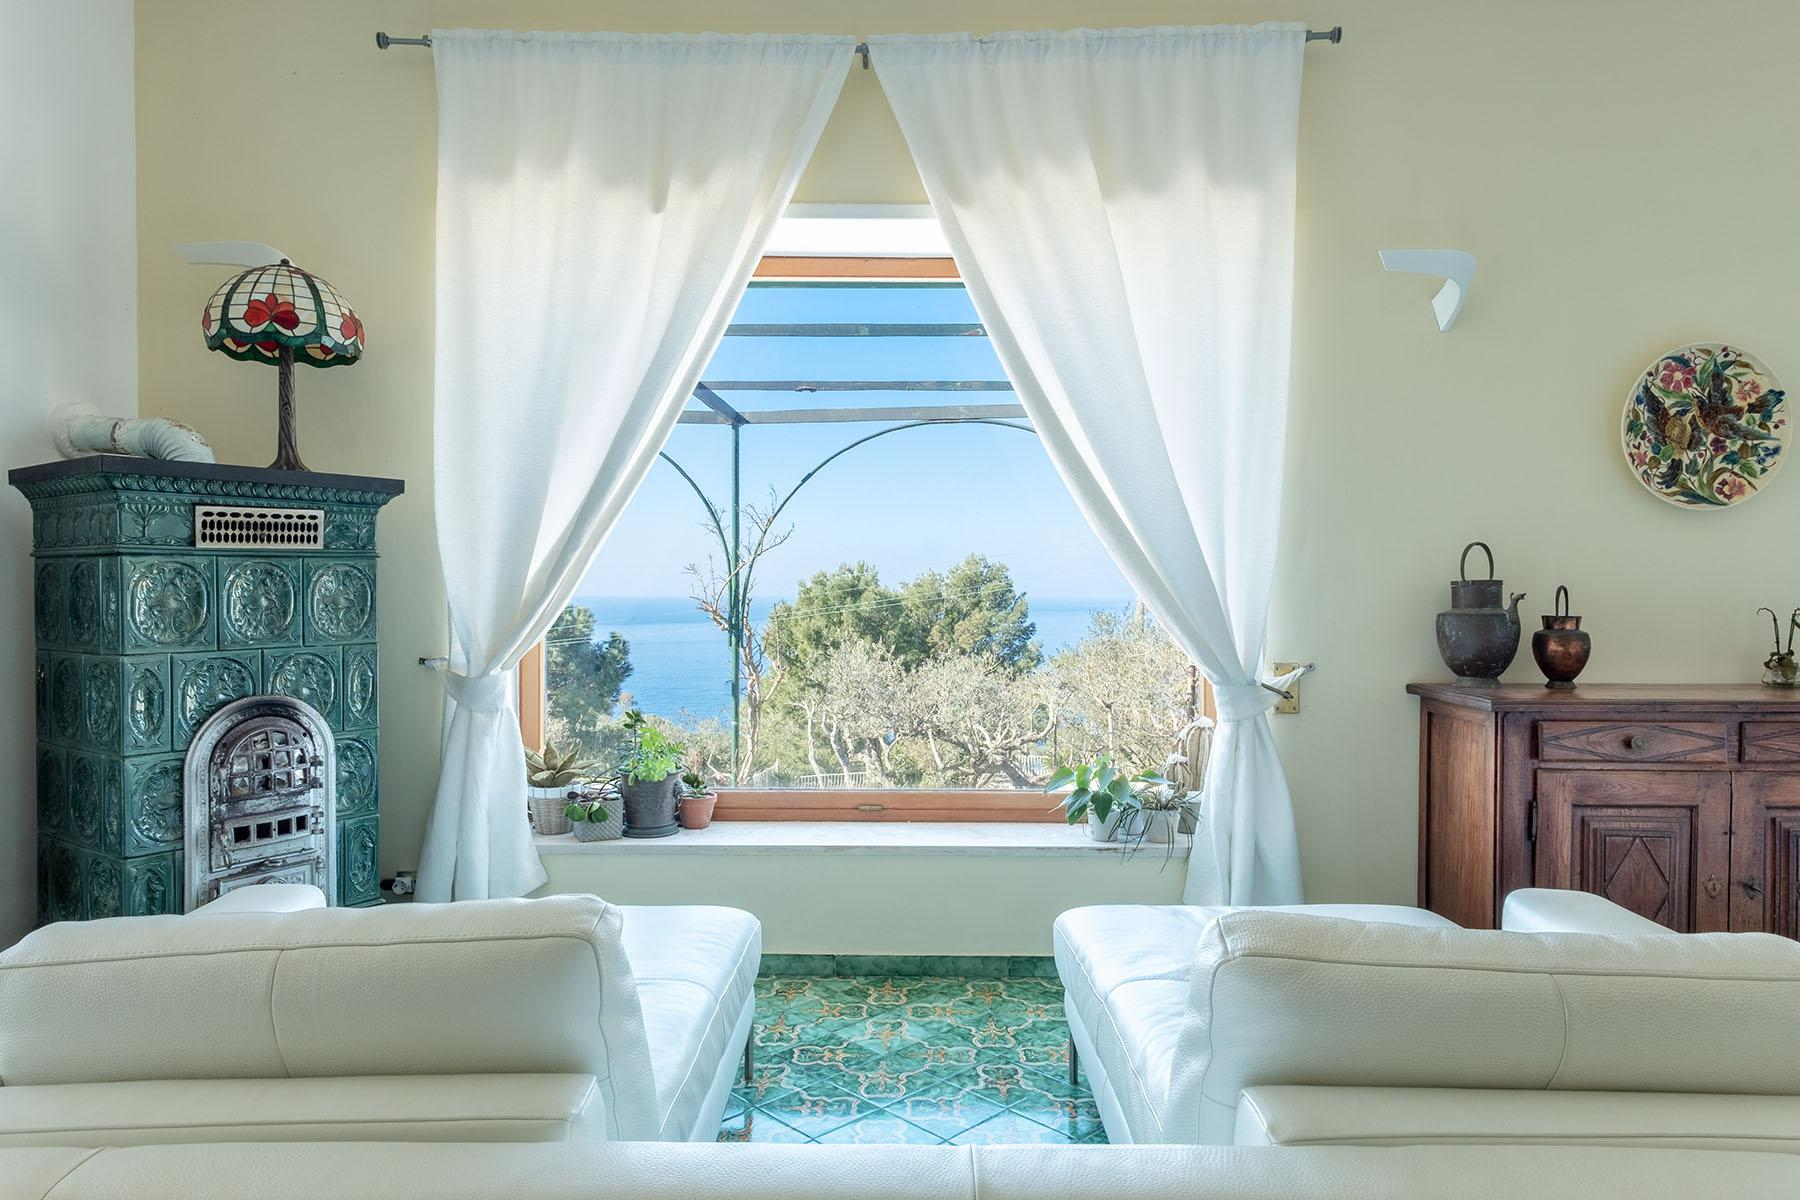 Wonderful villa with garden and seaview in Anacapri - 6